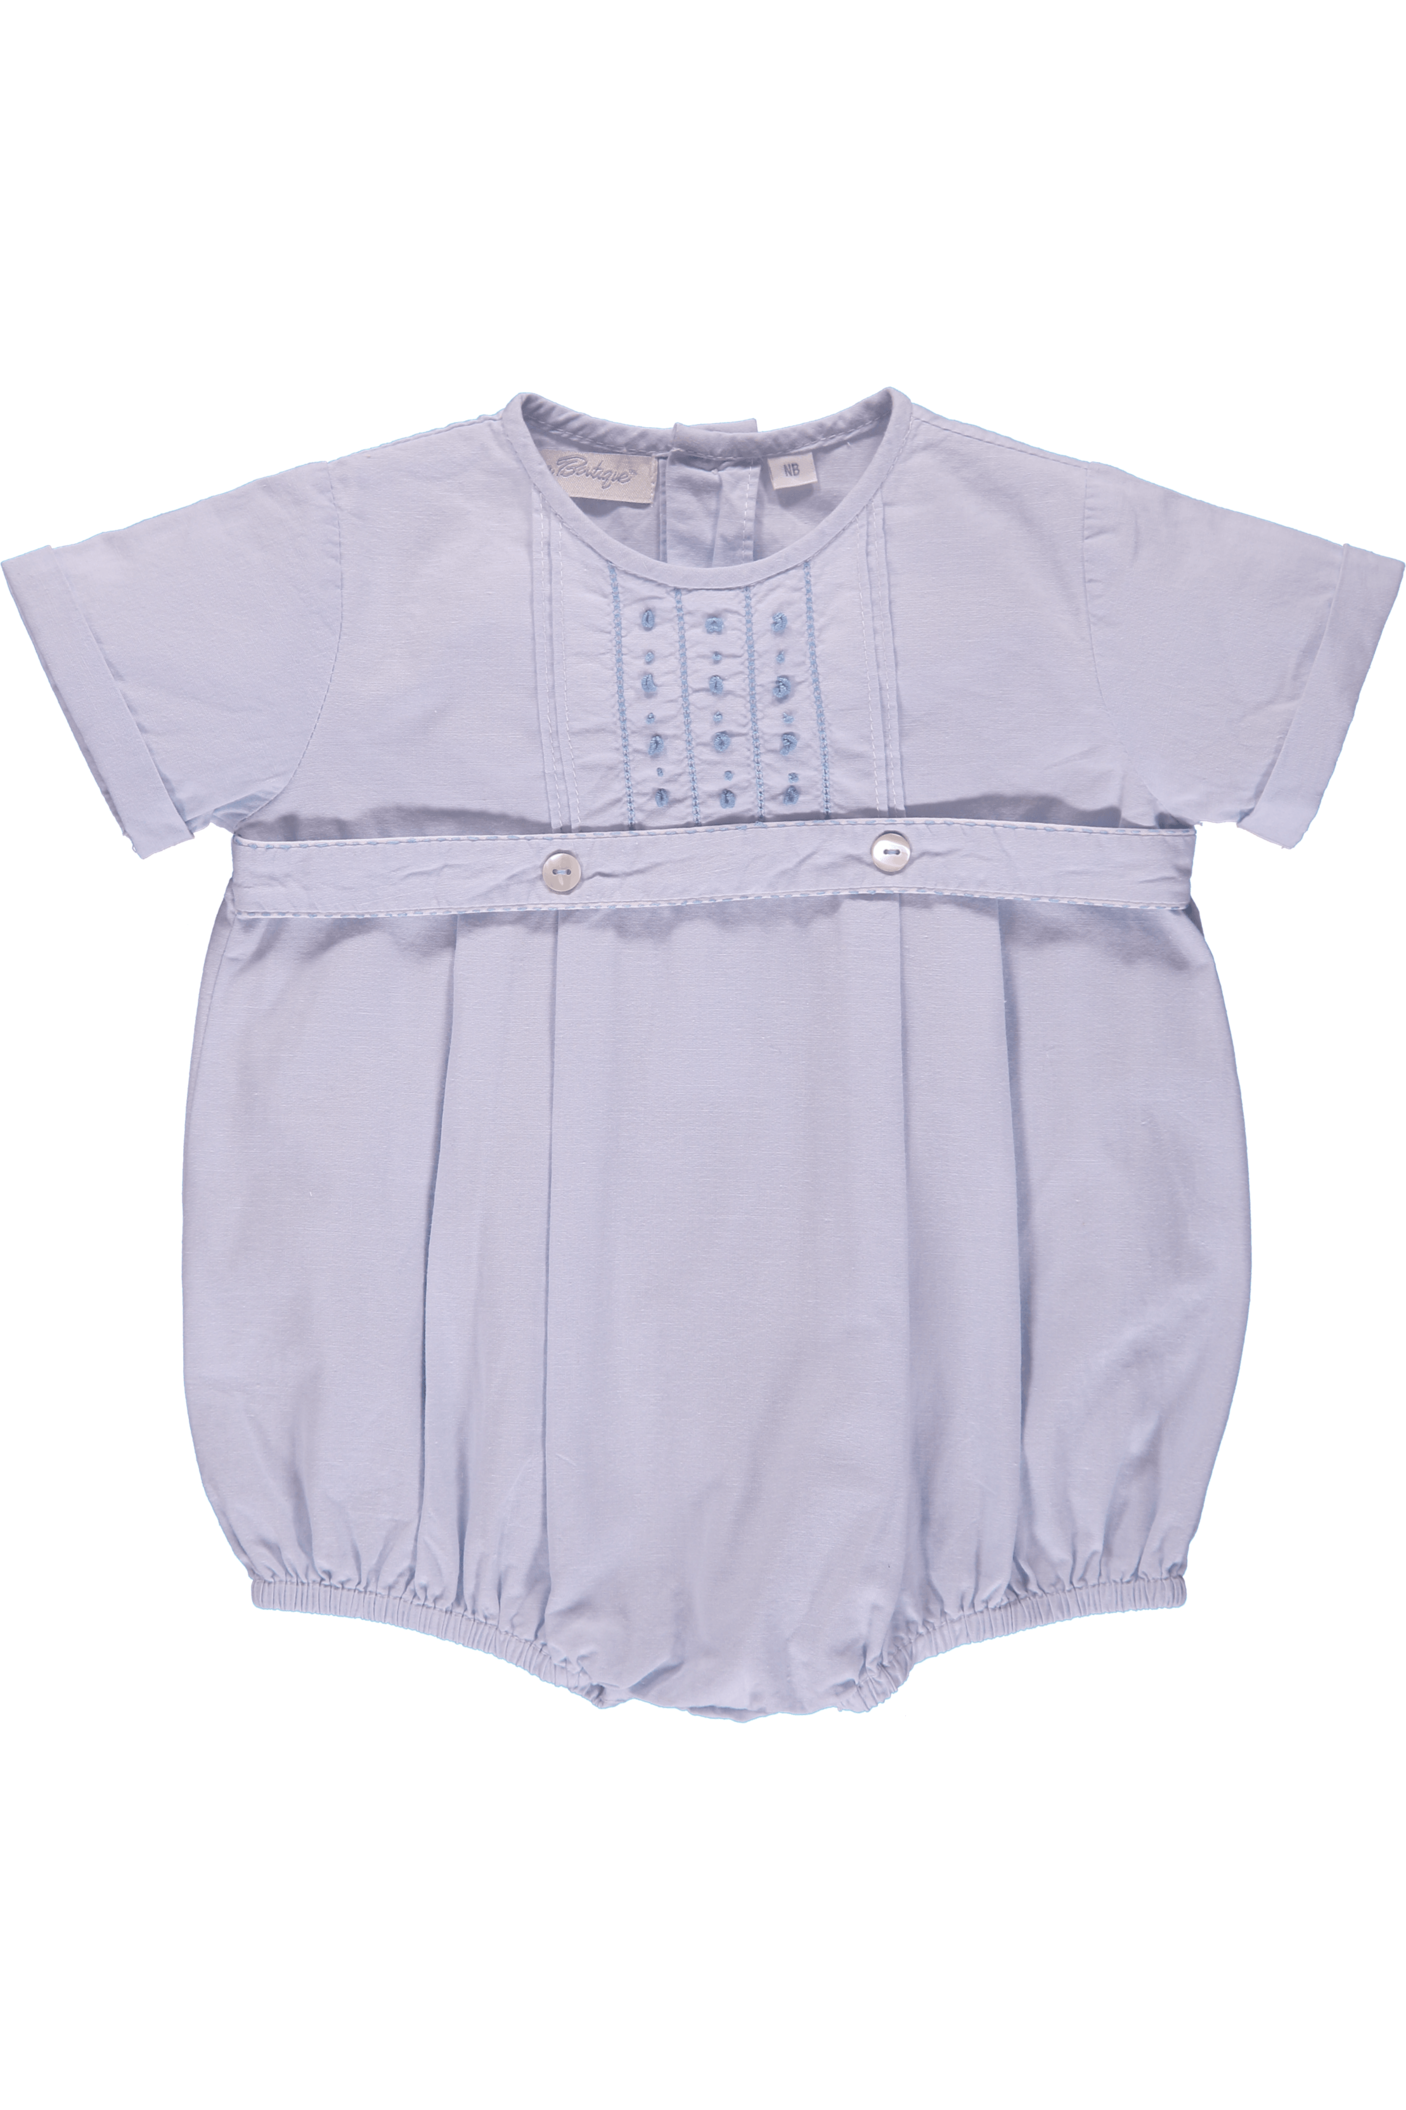 58ed83807 Baby Boy Hand Embroidered Classic Creeper Romper - Blue Tuxedo ...